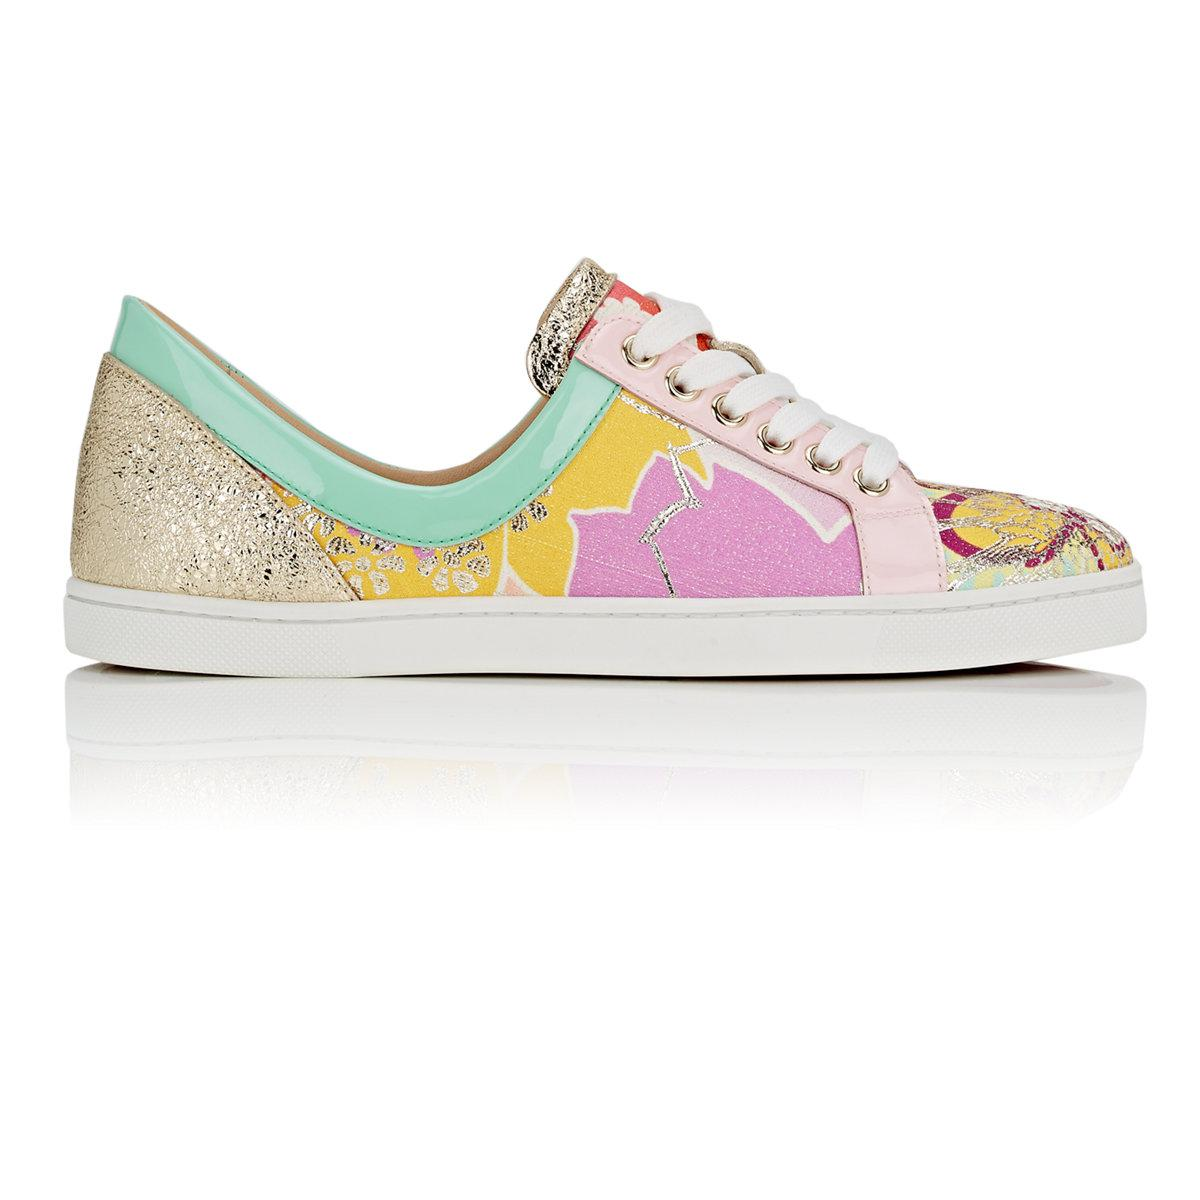 louboutin sneakers girl